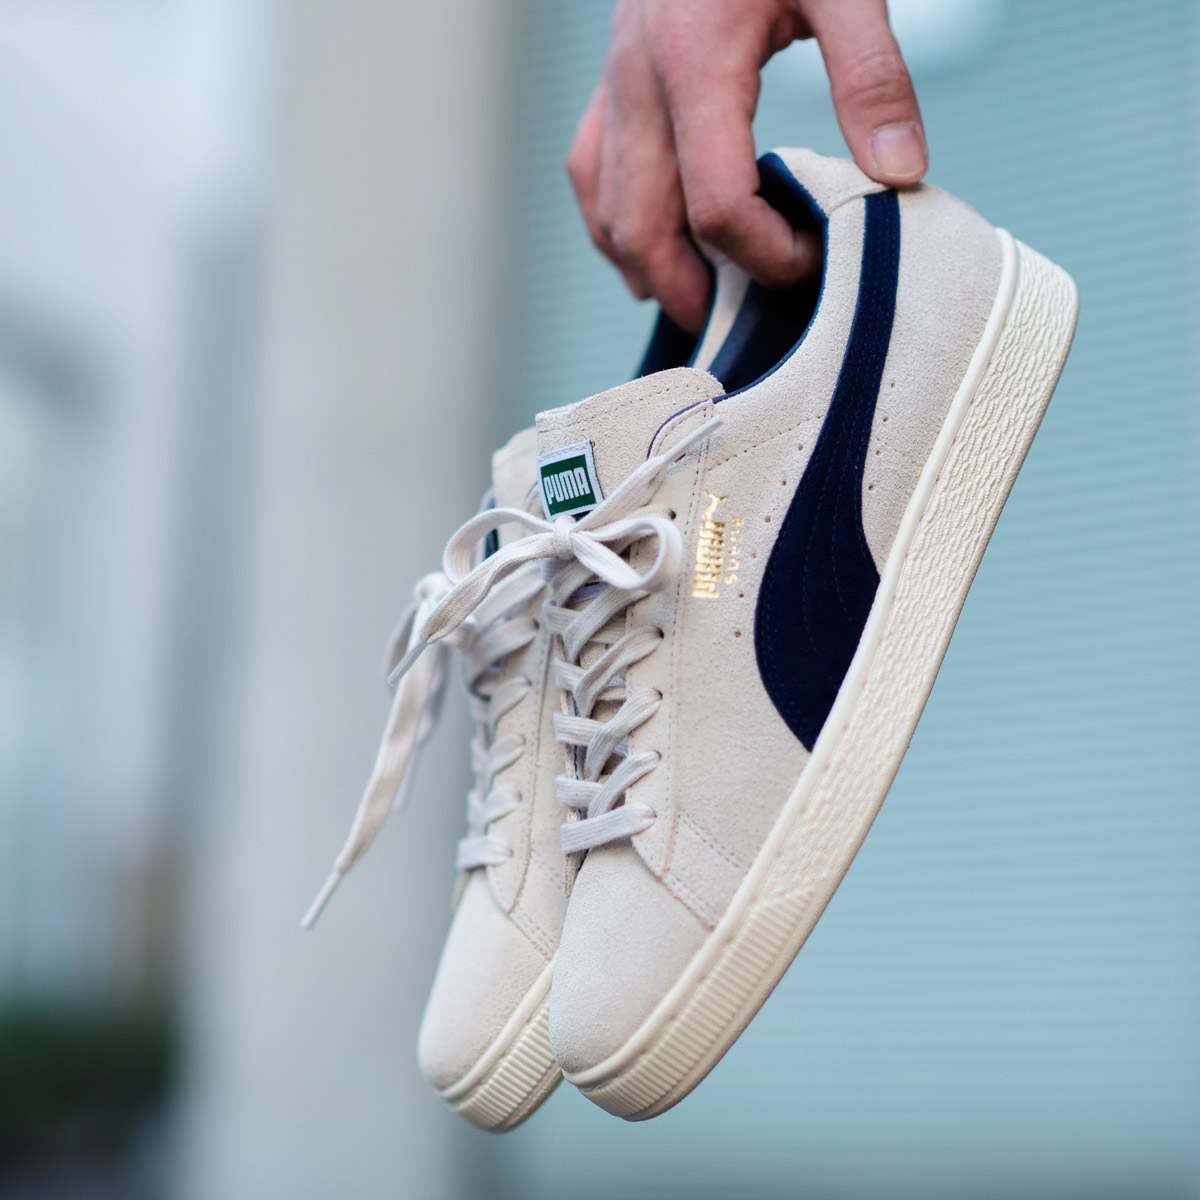 8ff57fe275dd PUMA SUEDE which is loved as a constant seller of the street for a long  time. PUMA SUEDE using the shoe tree most stylish in history which the  above all ...